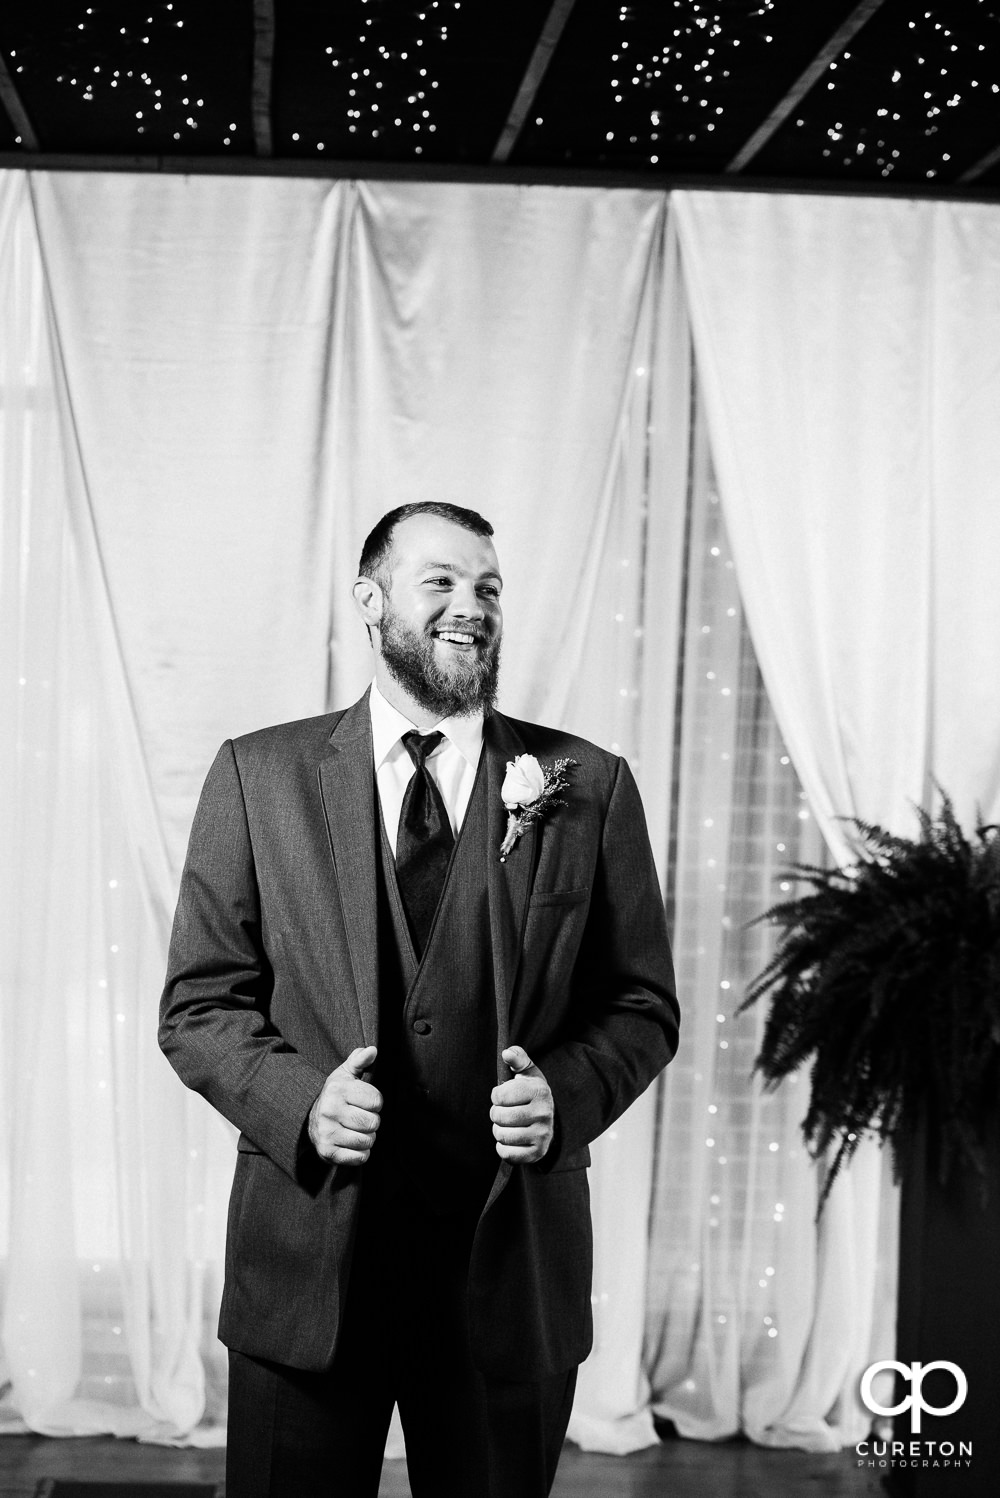 Groom standing at the alter.